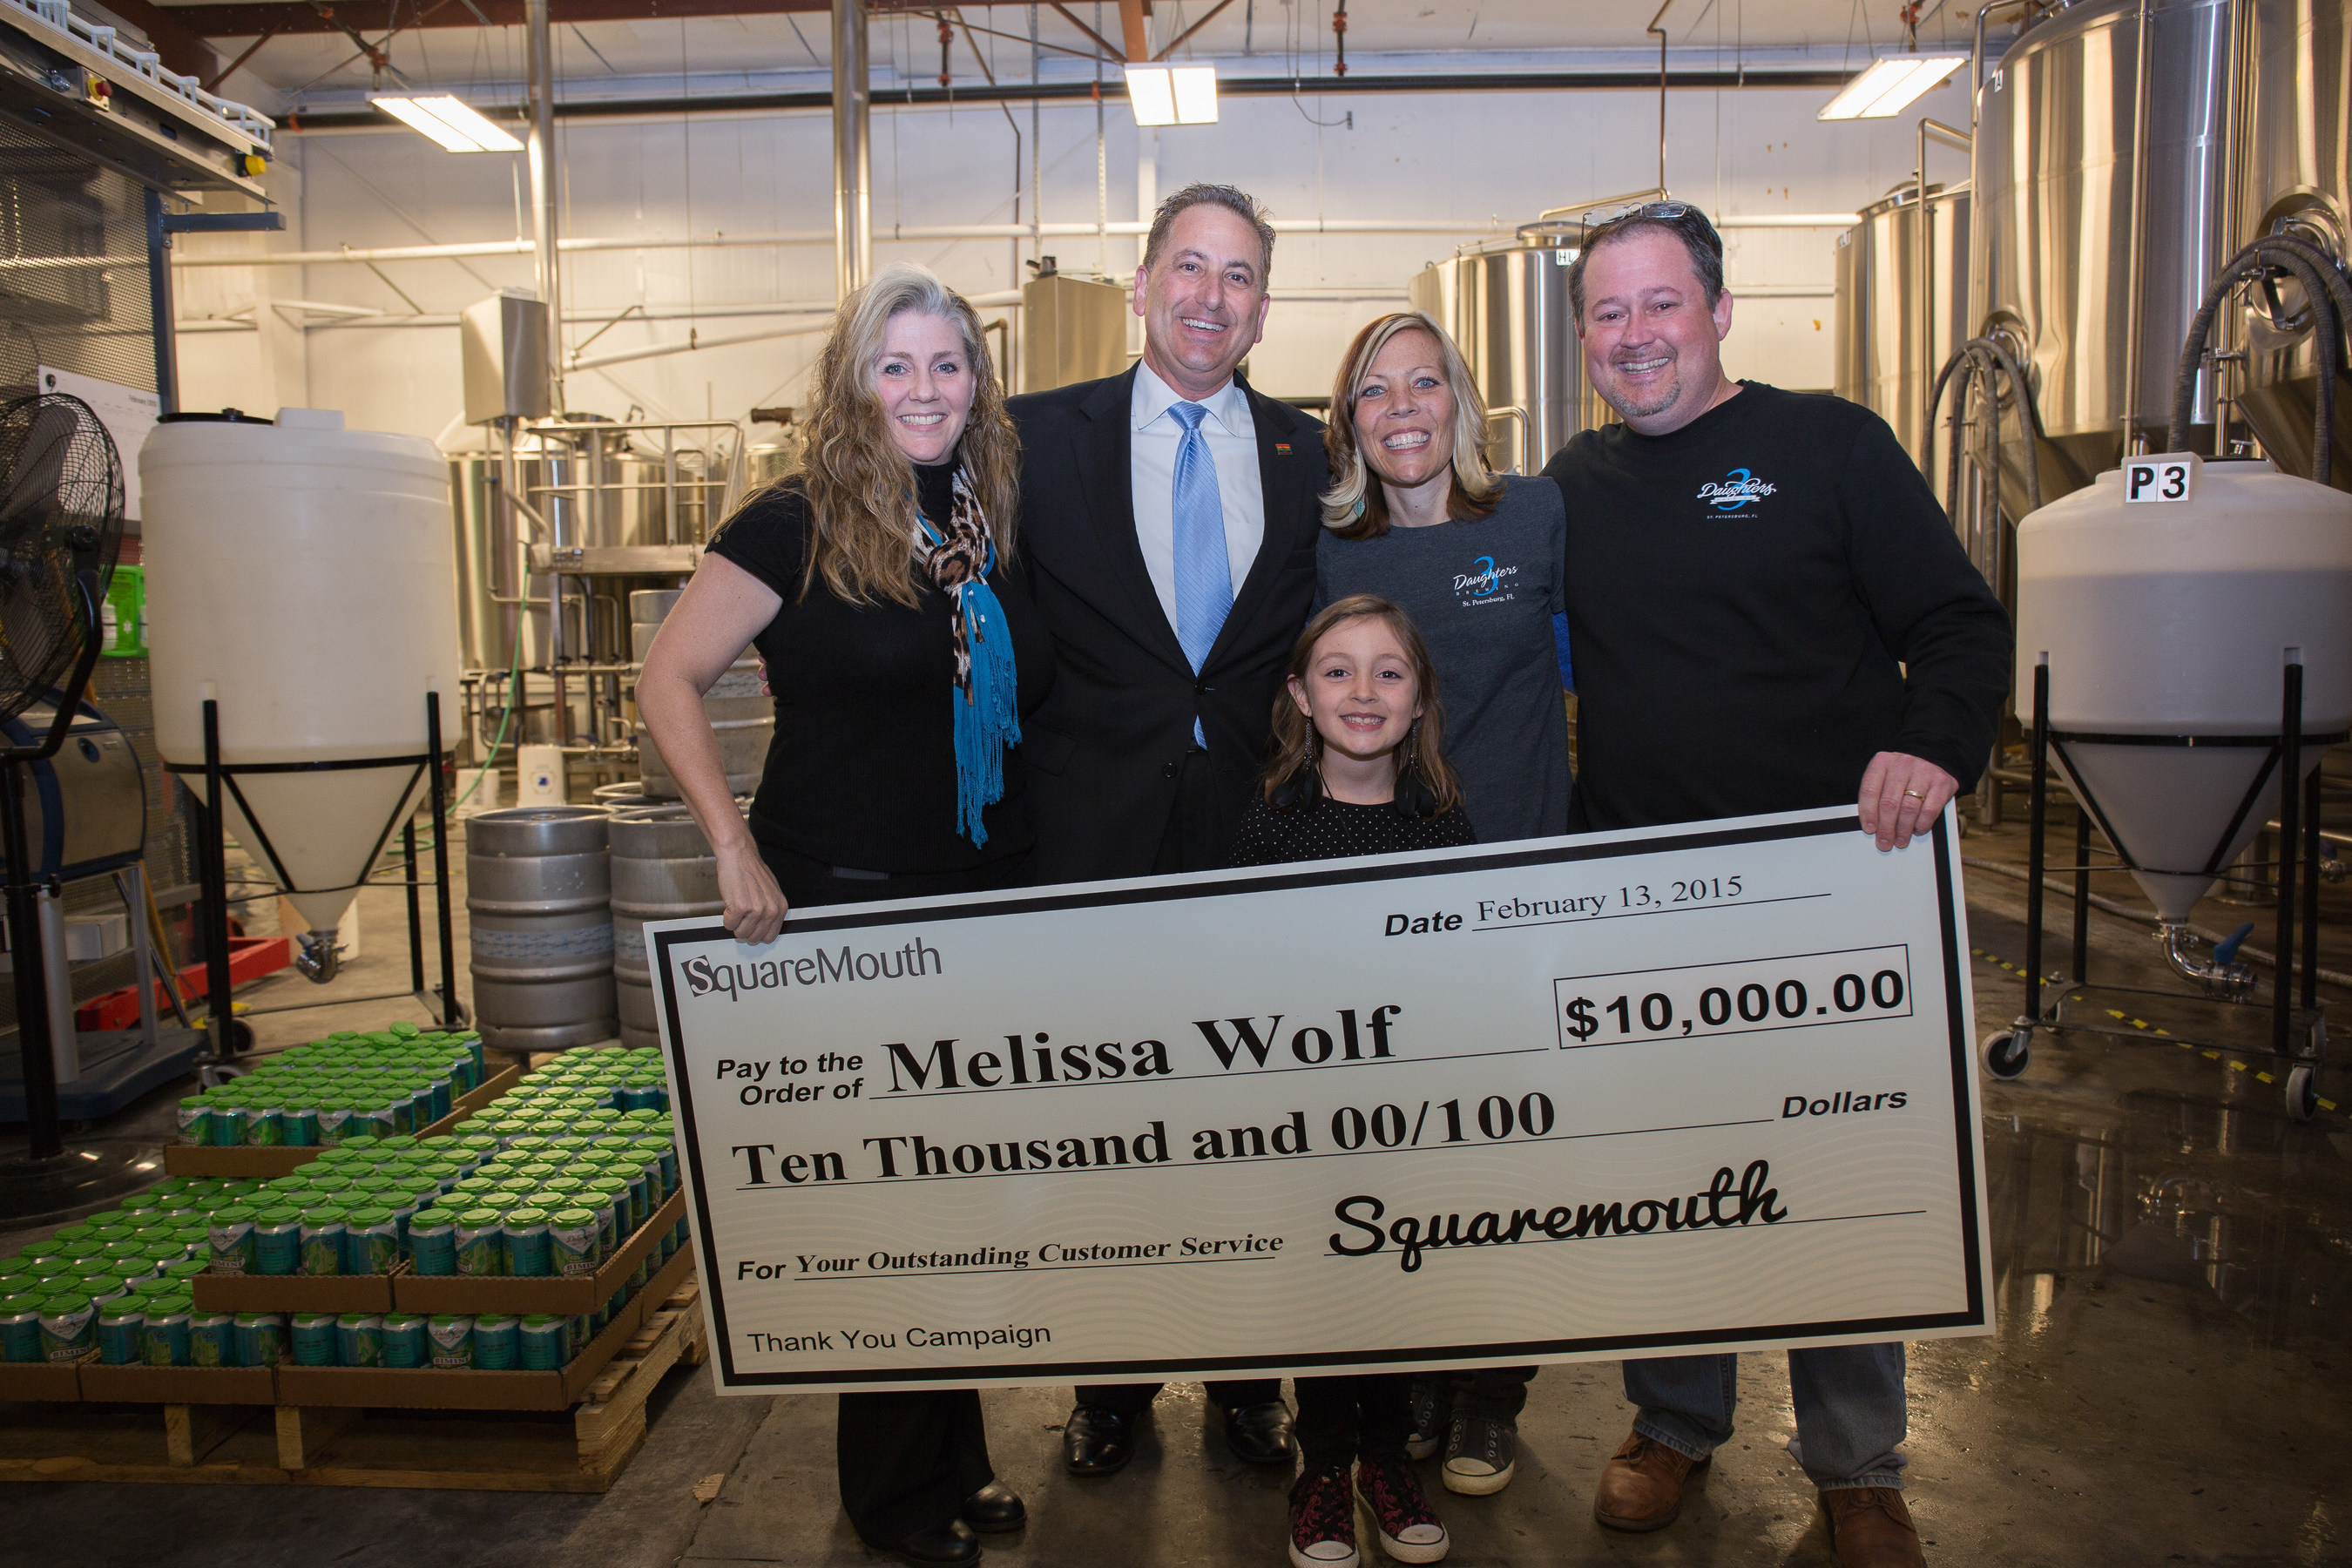 St. Pete Server Gets $10,000 Surprise from Squaremouth and Mayor Kriseman